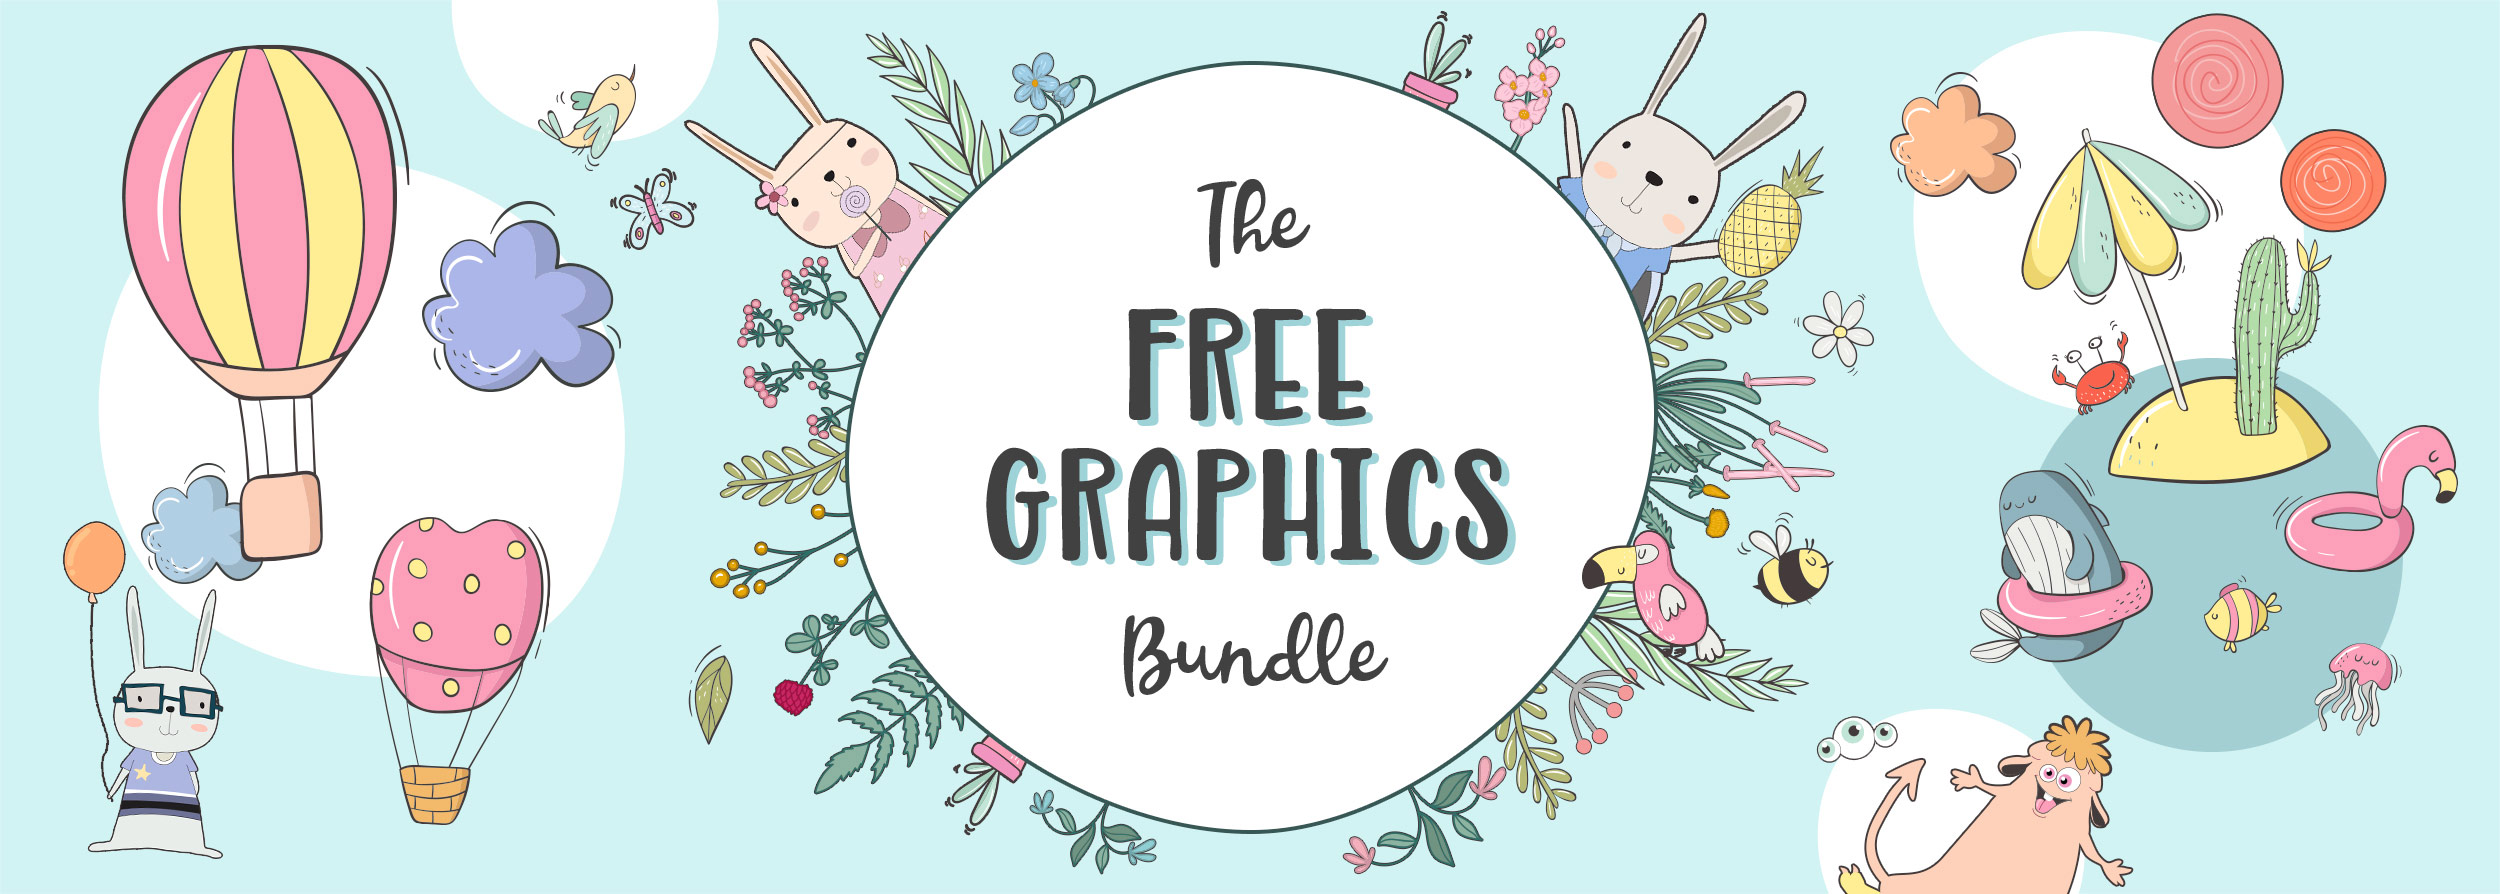 Free Graphics Bundle.